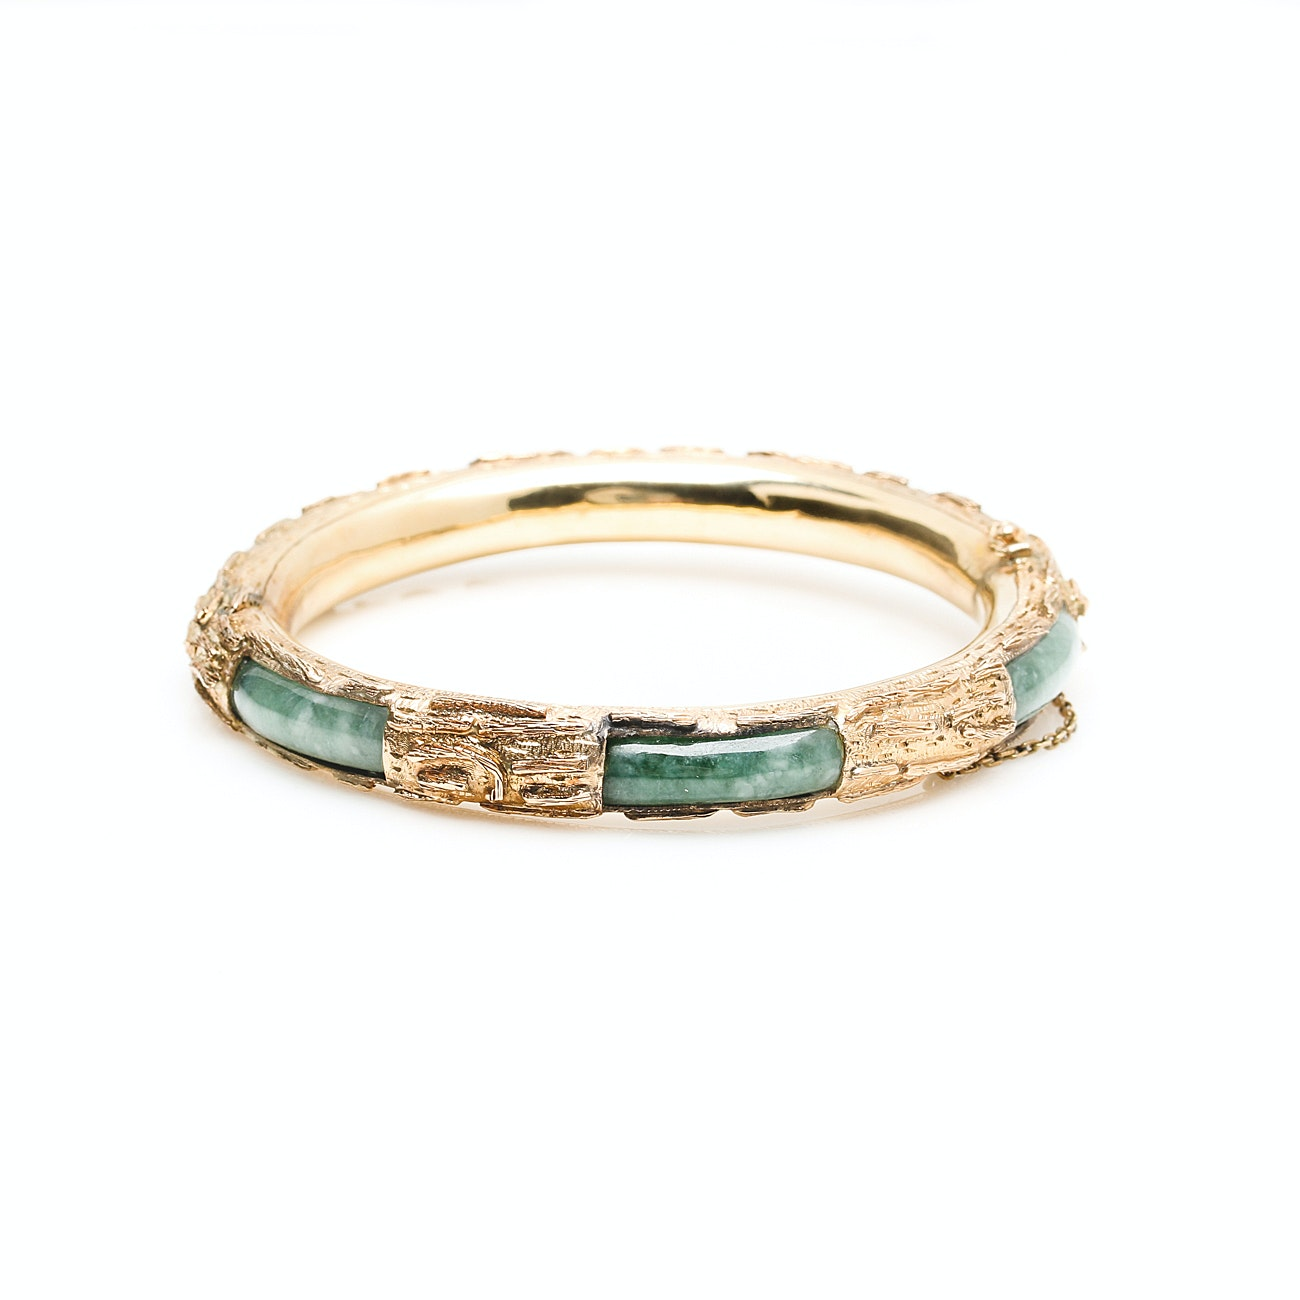 14K Yellow Gold Jadeite Hinged Bangle Bracelet With 10K Yellow Gold Finding